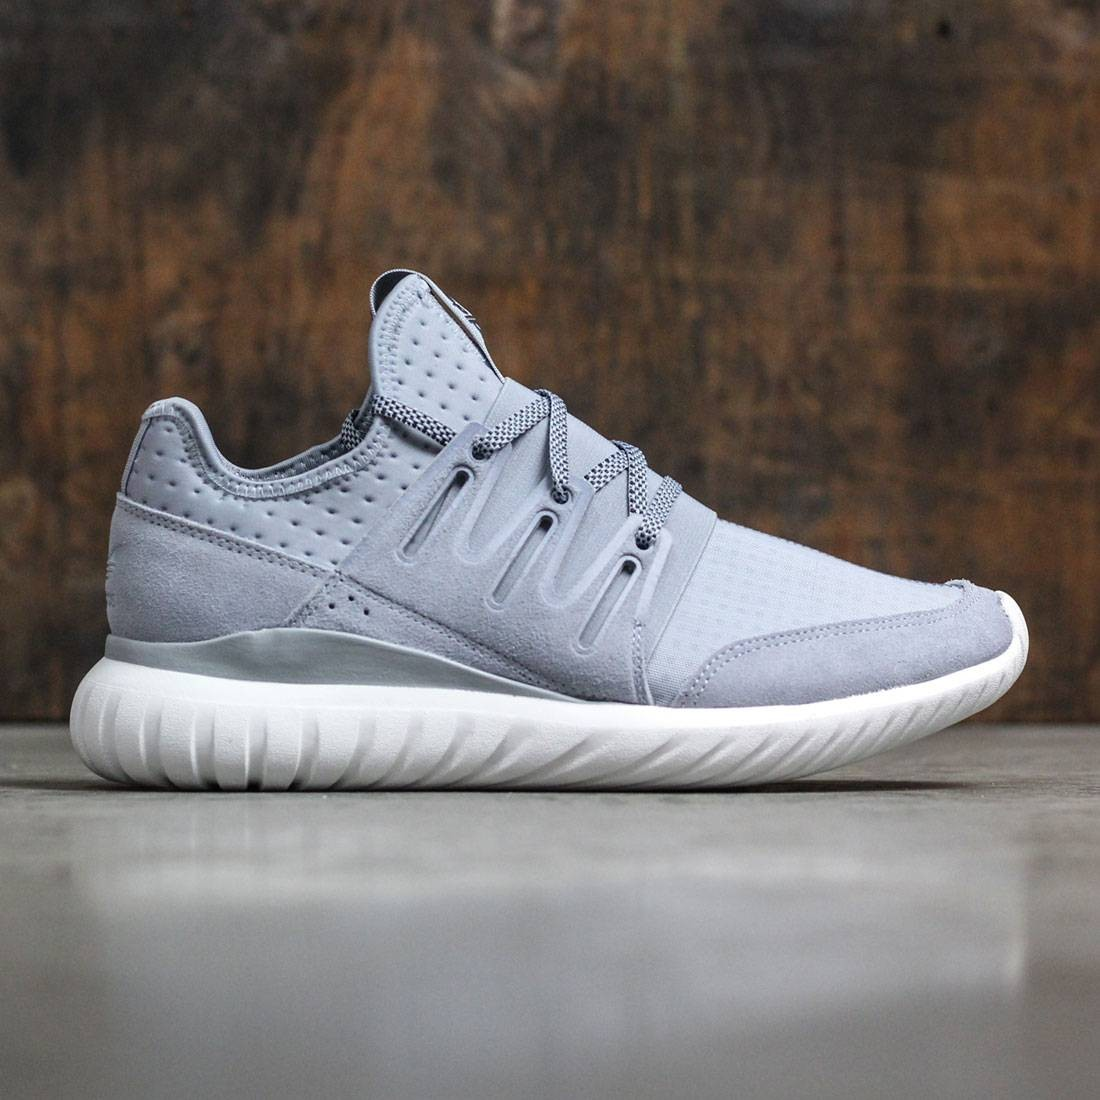 dd3a97c864b7 Adidas Men Tubular Radial gray light grey core black vintage white